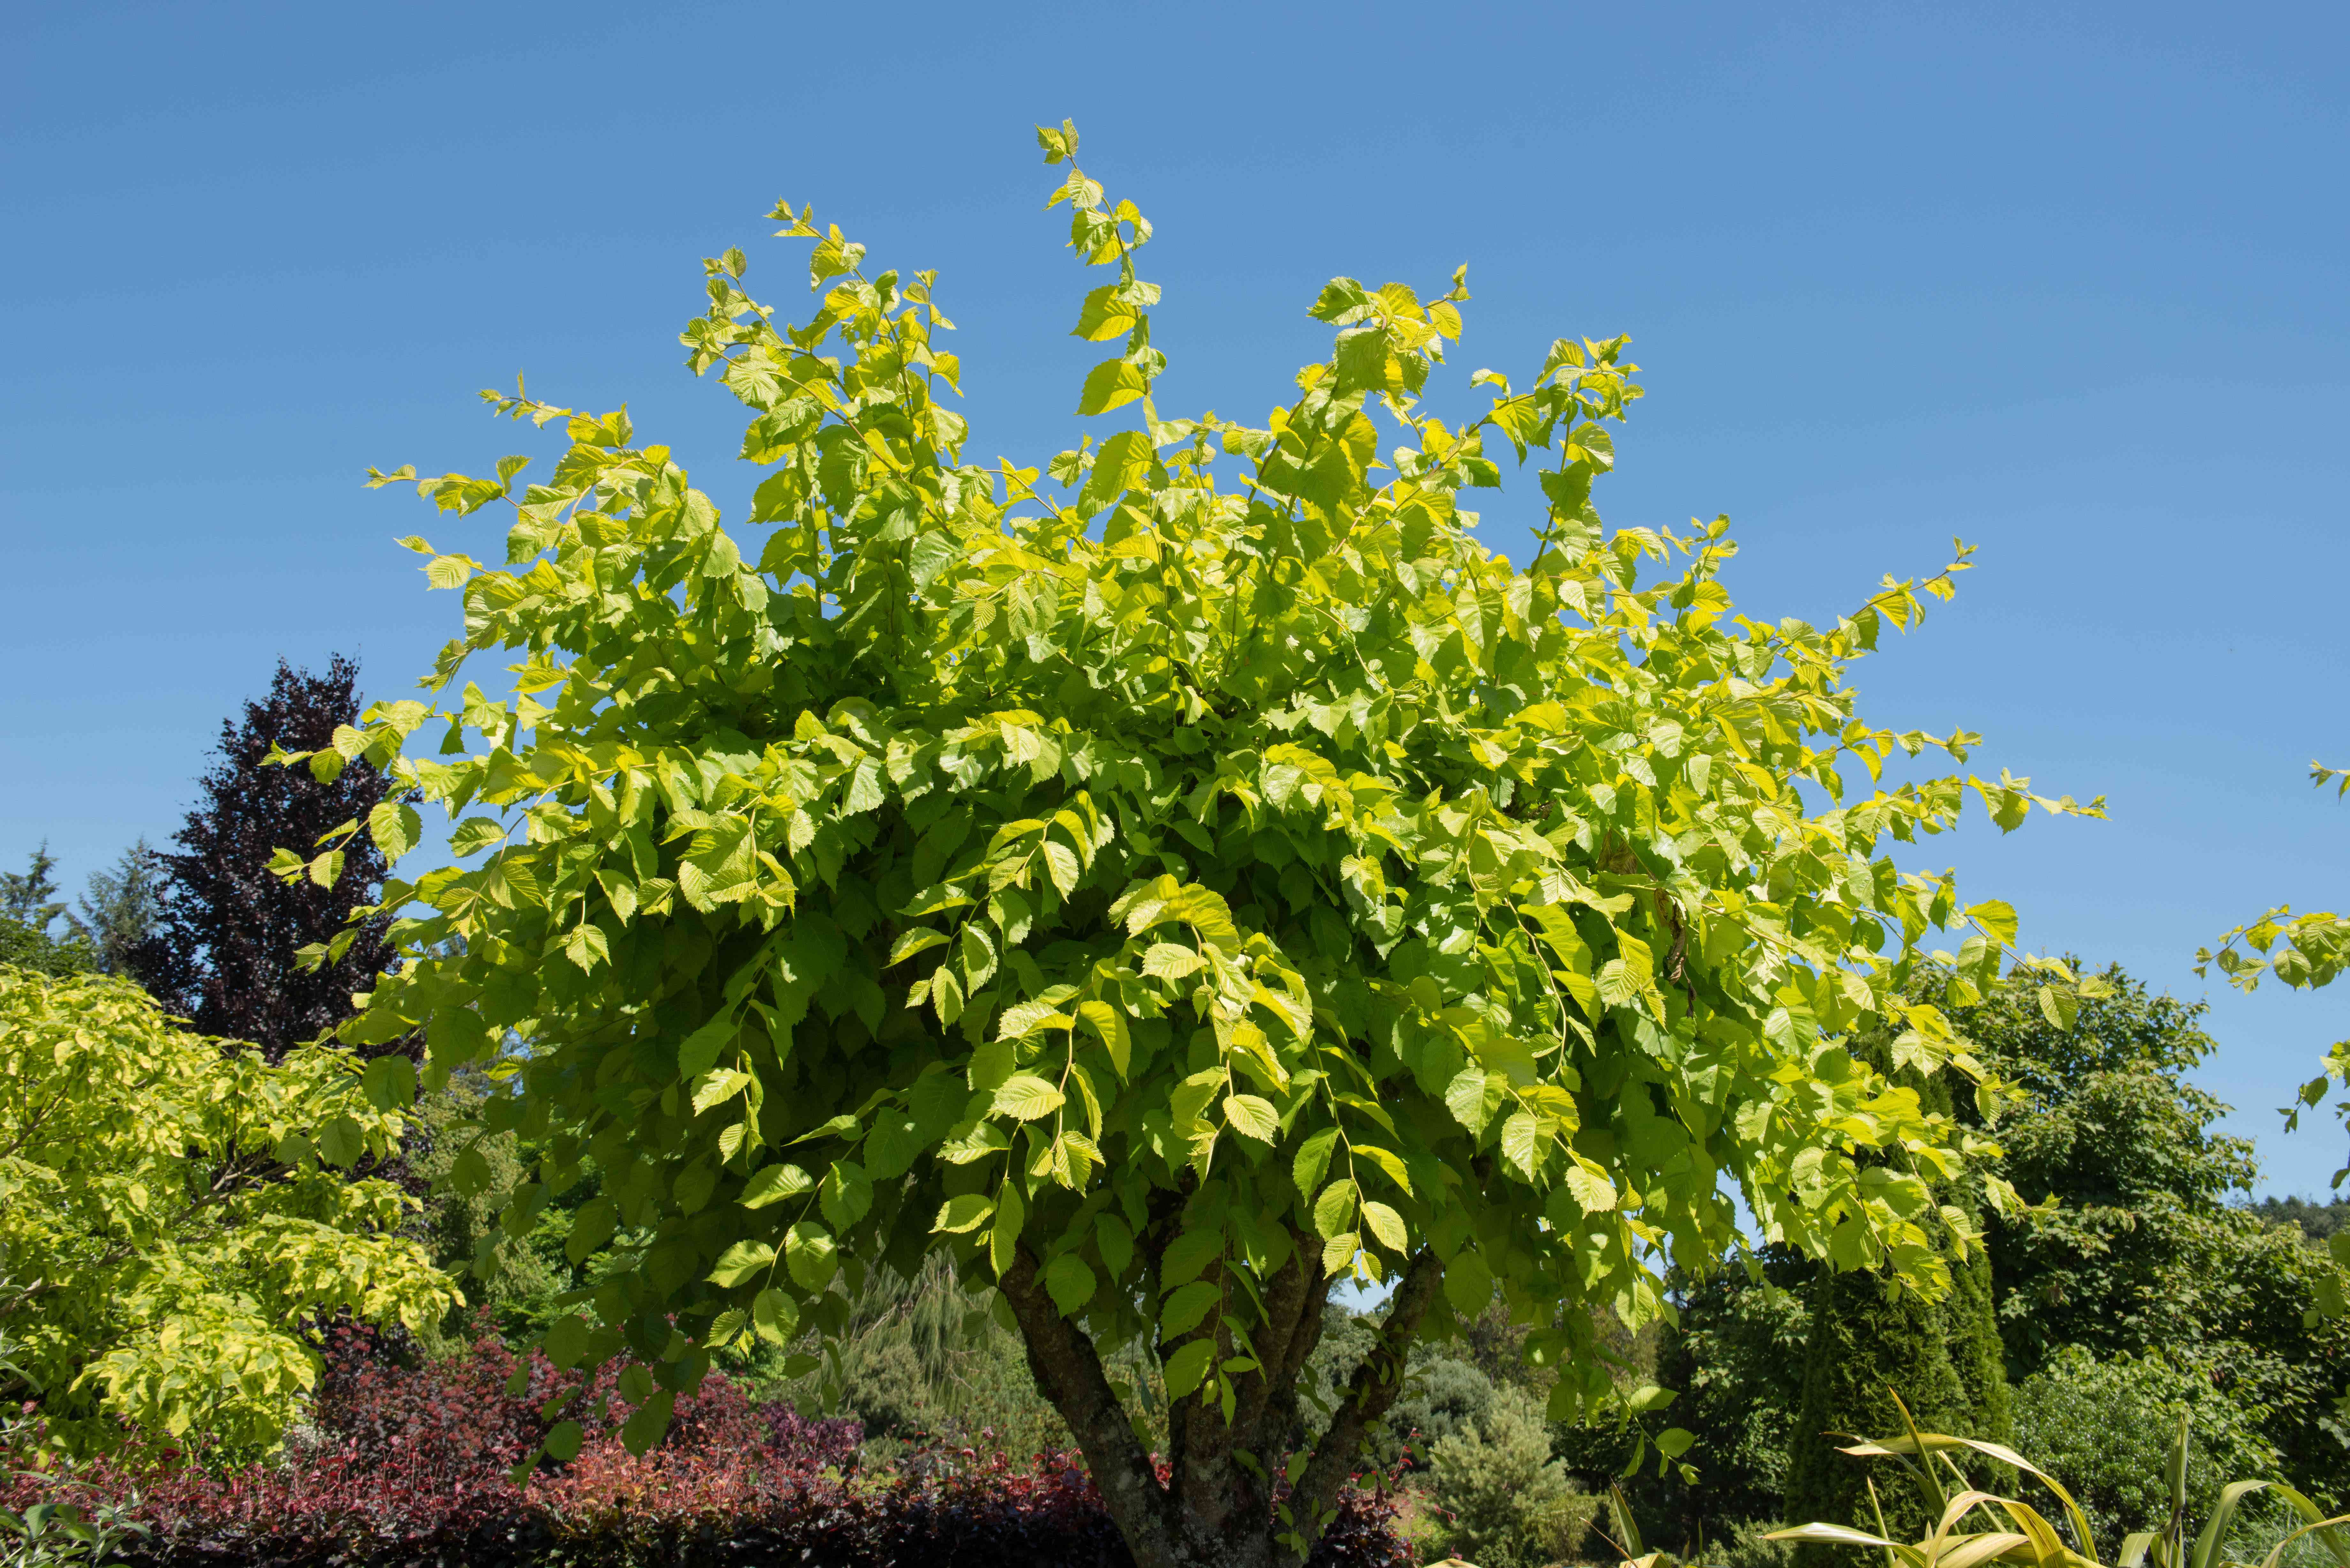 Green foliage of the camperdown elm